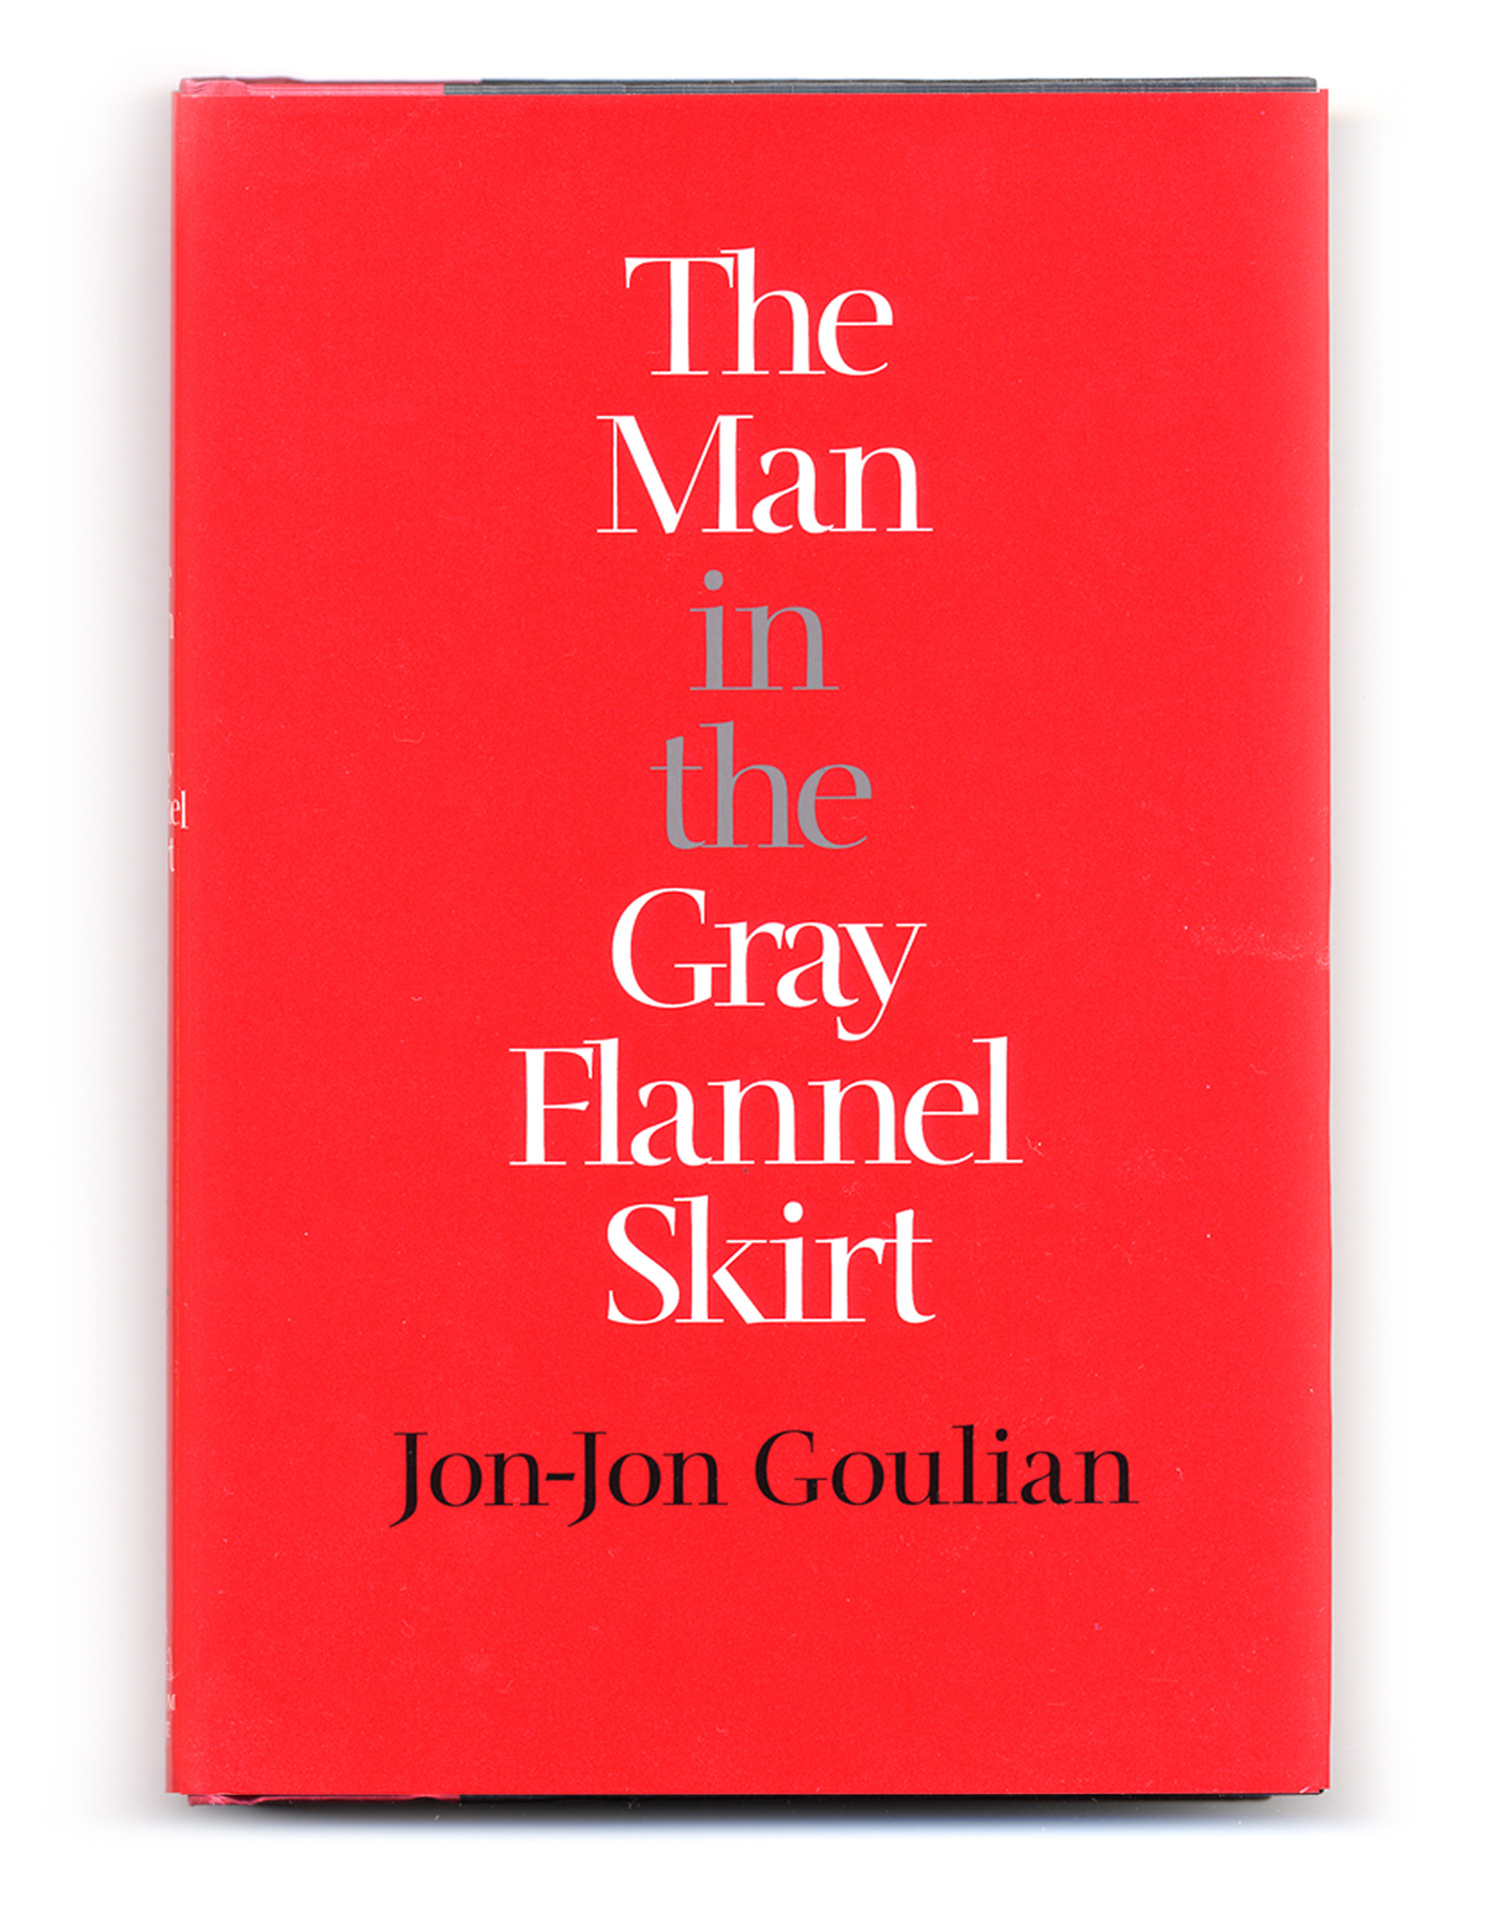 THE-MAN-IN-THE-GRAY-FLANNEL-SKIRT-ss6.jpg